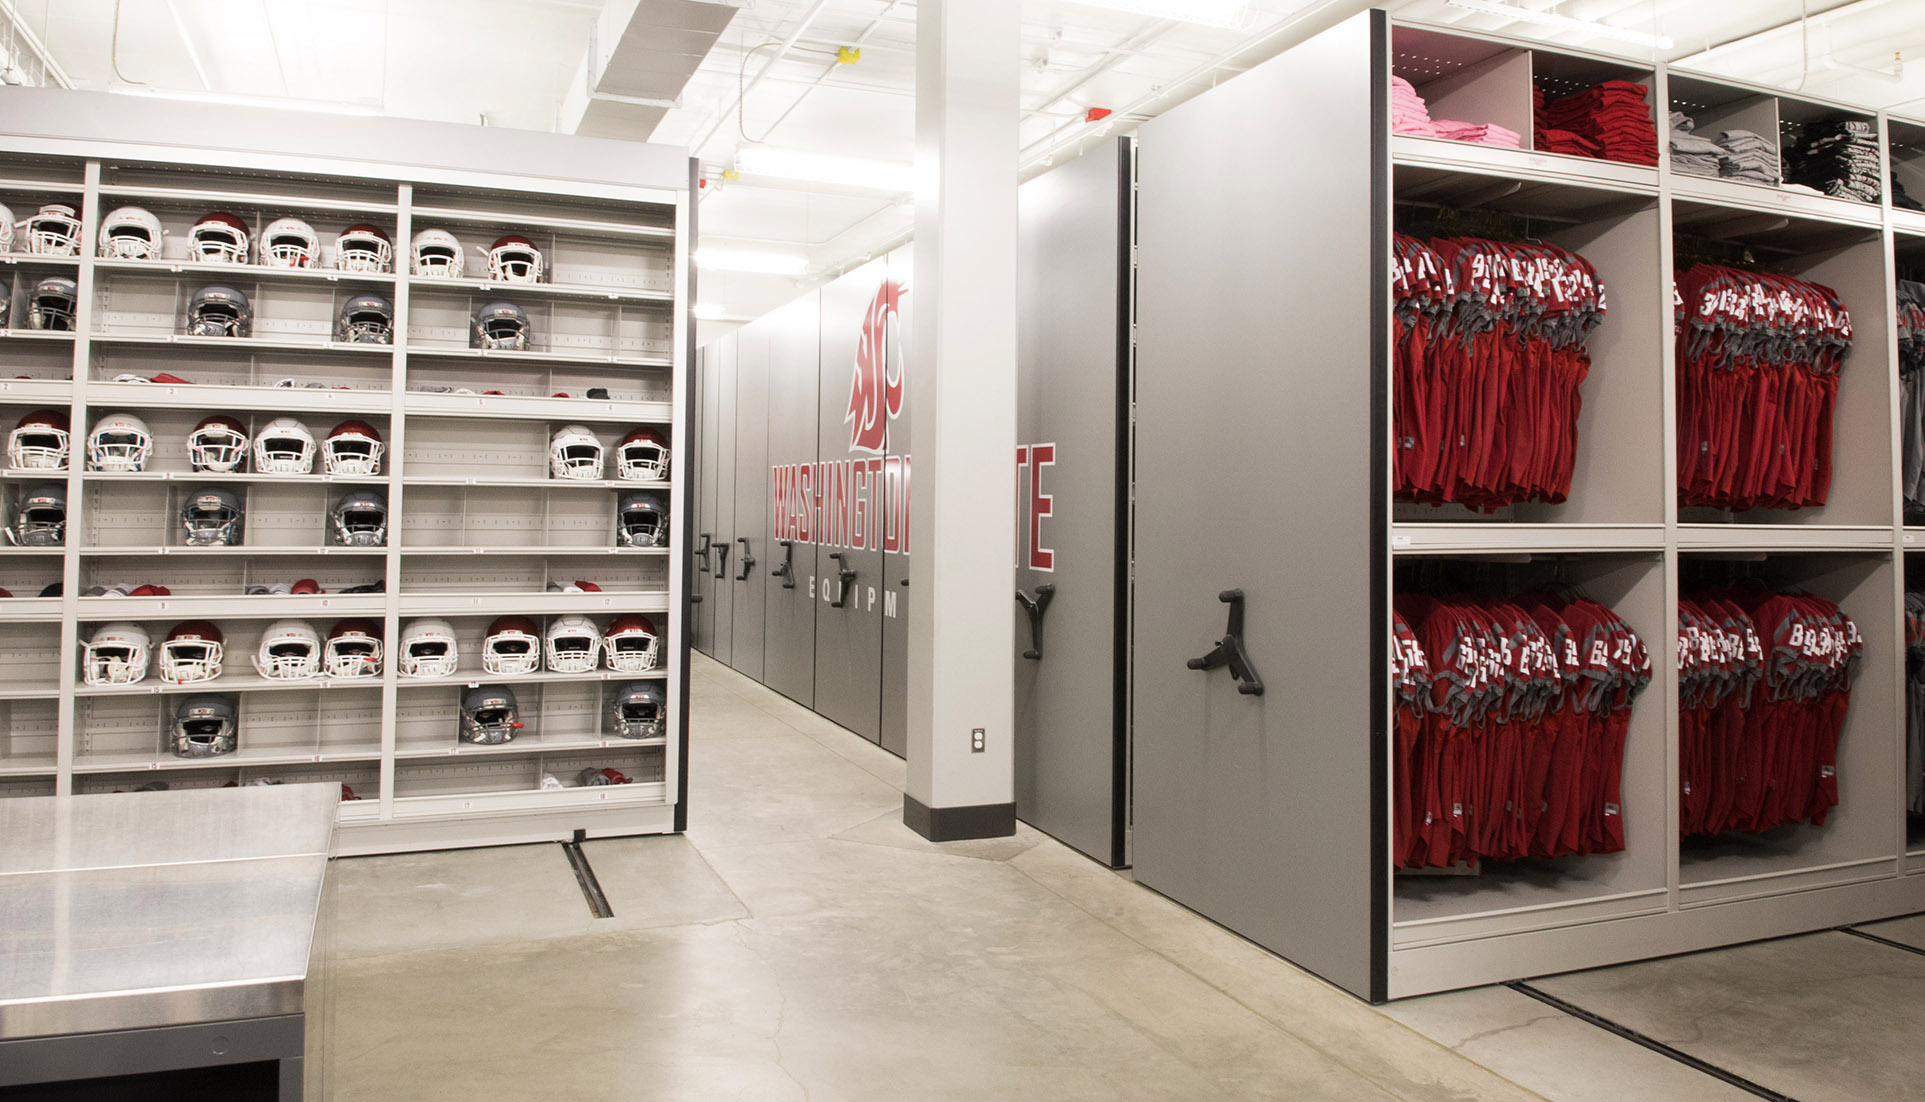 Football equipment room storage ideas Store room design ideas